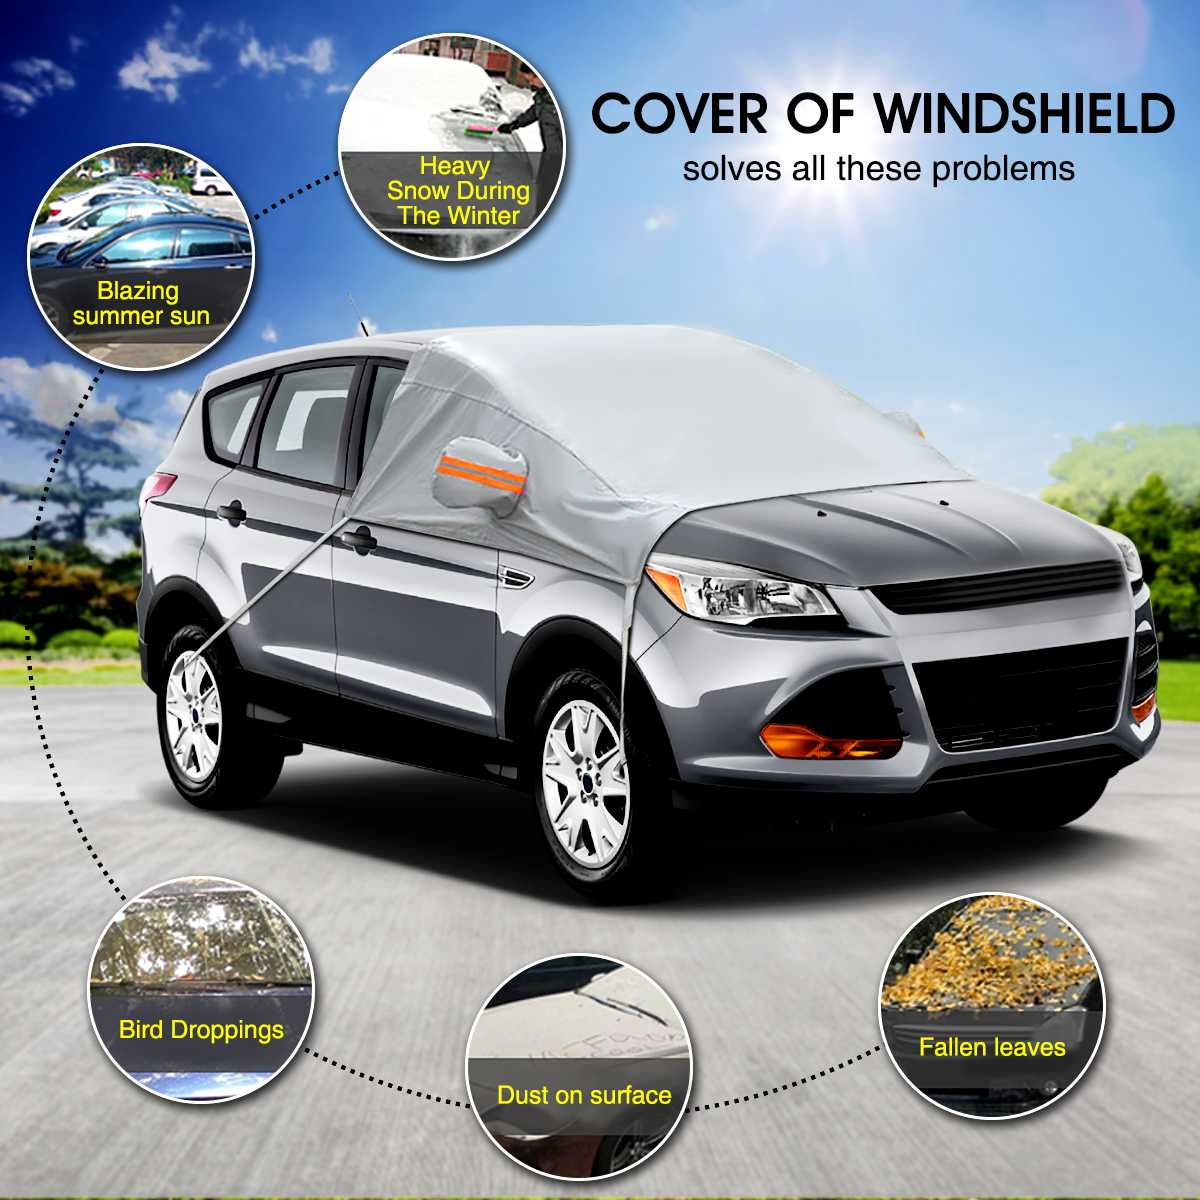 Car Windscreen Cover with Mirrors Snow Cover Winter Car Windshield Cover Sun Shade Protector L XL for Van SUVs Trucks RVs